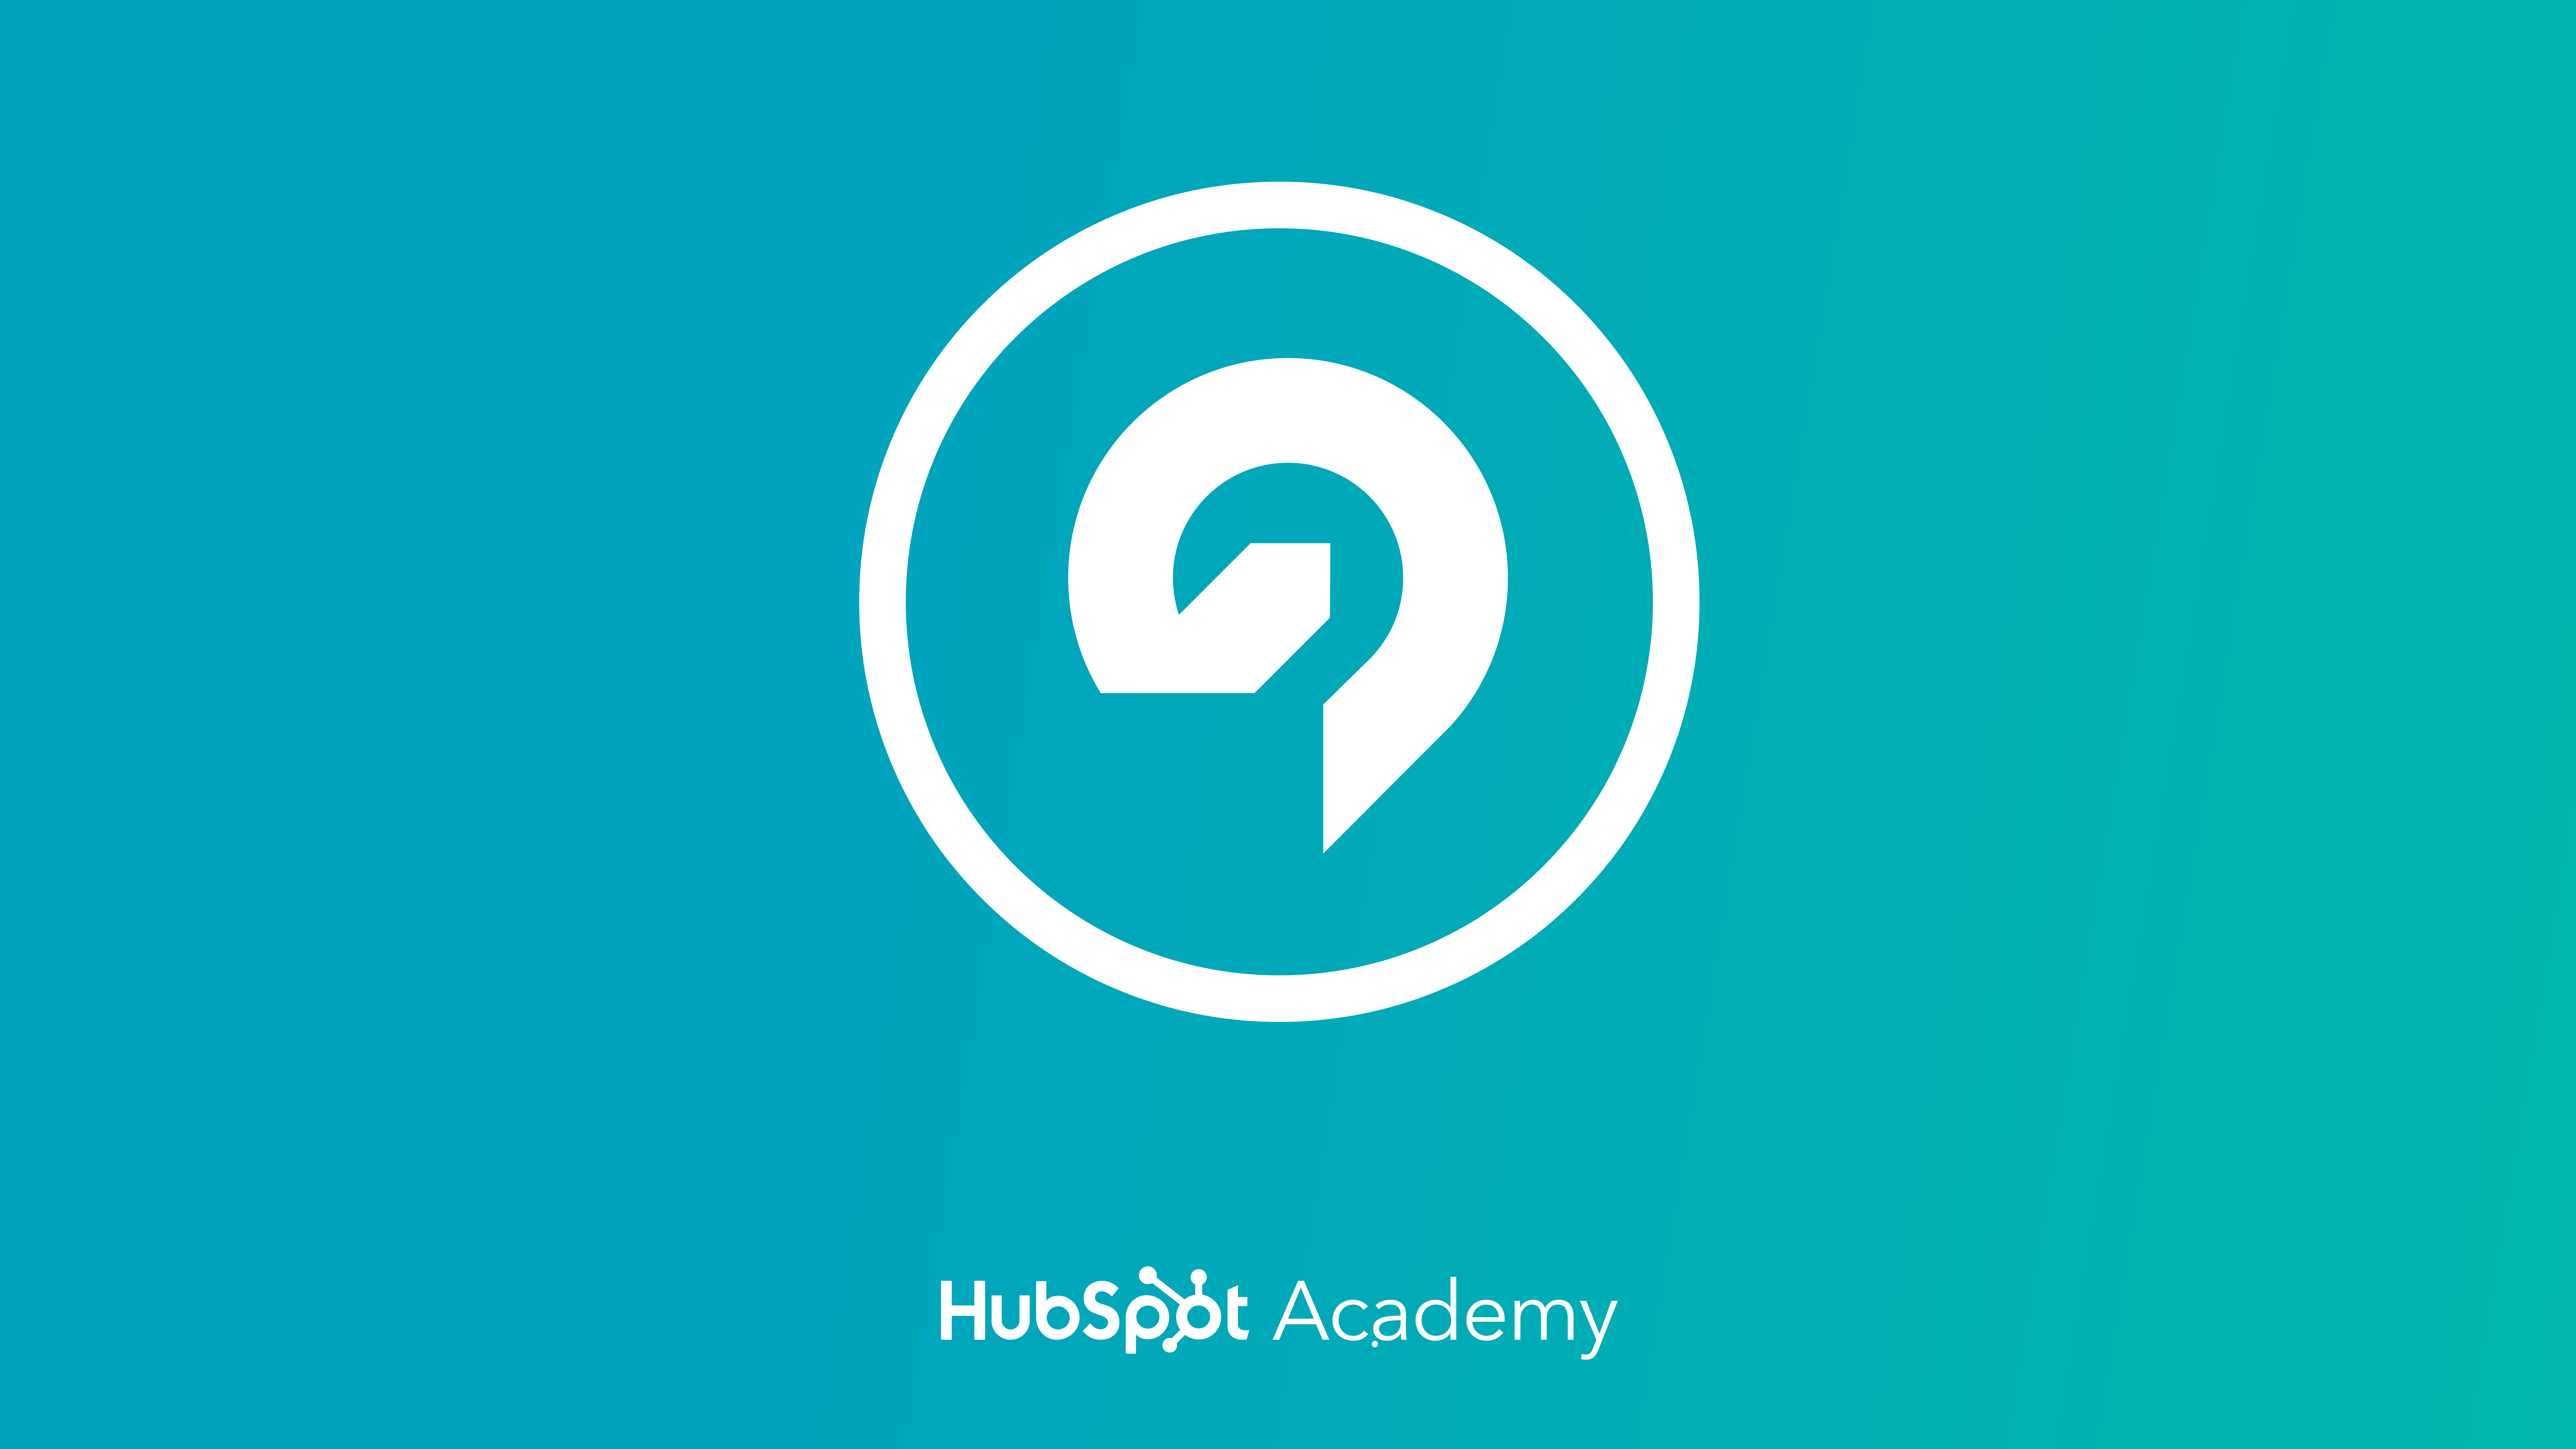 Growth-Driven Design Agency Certification course by HubSpot Academy